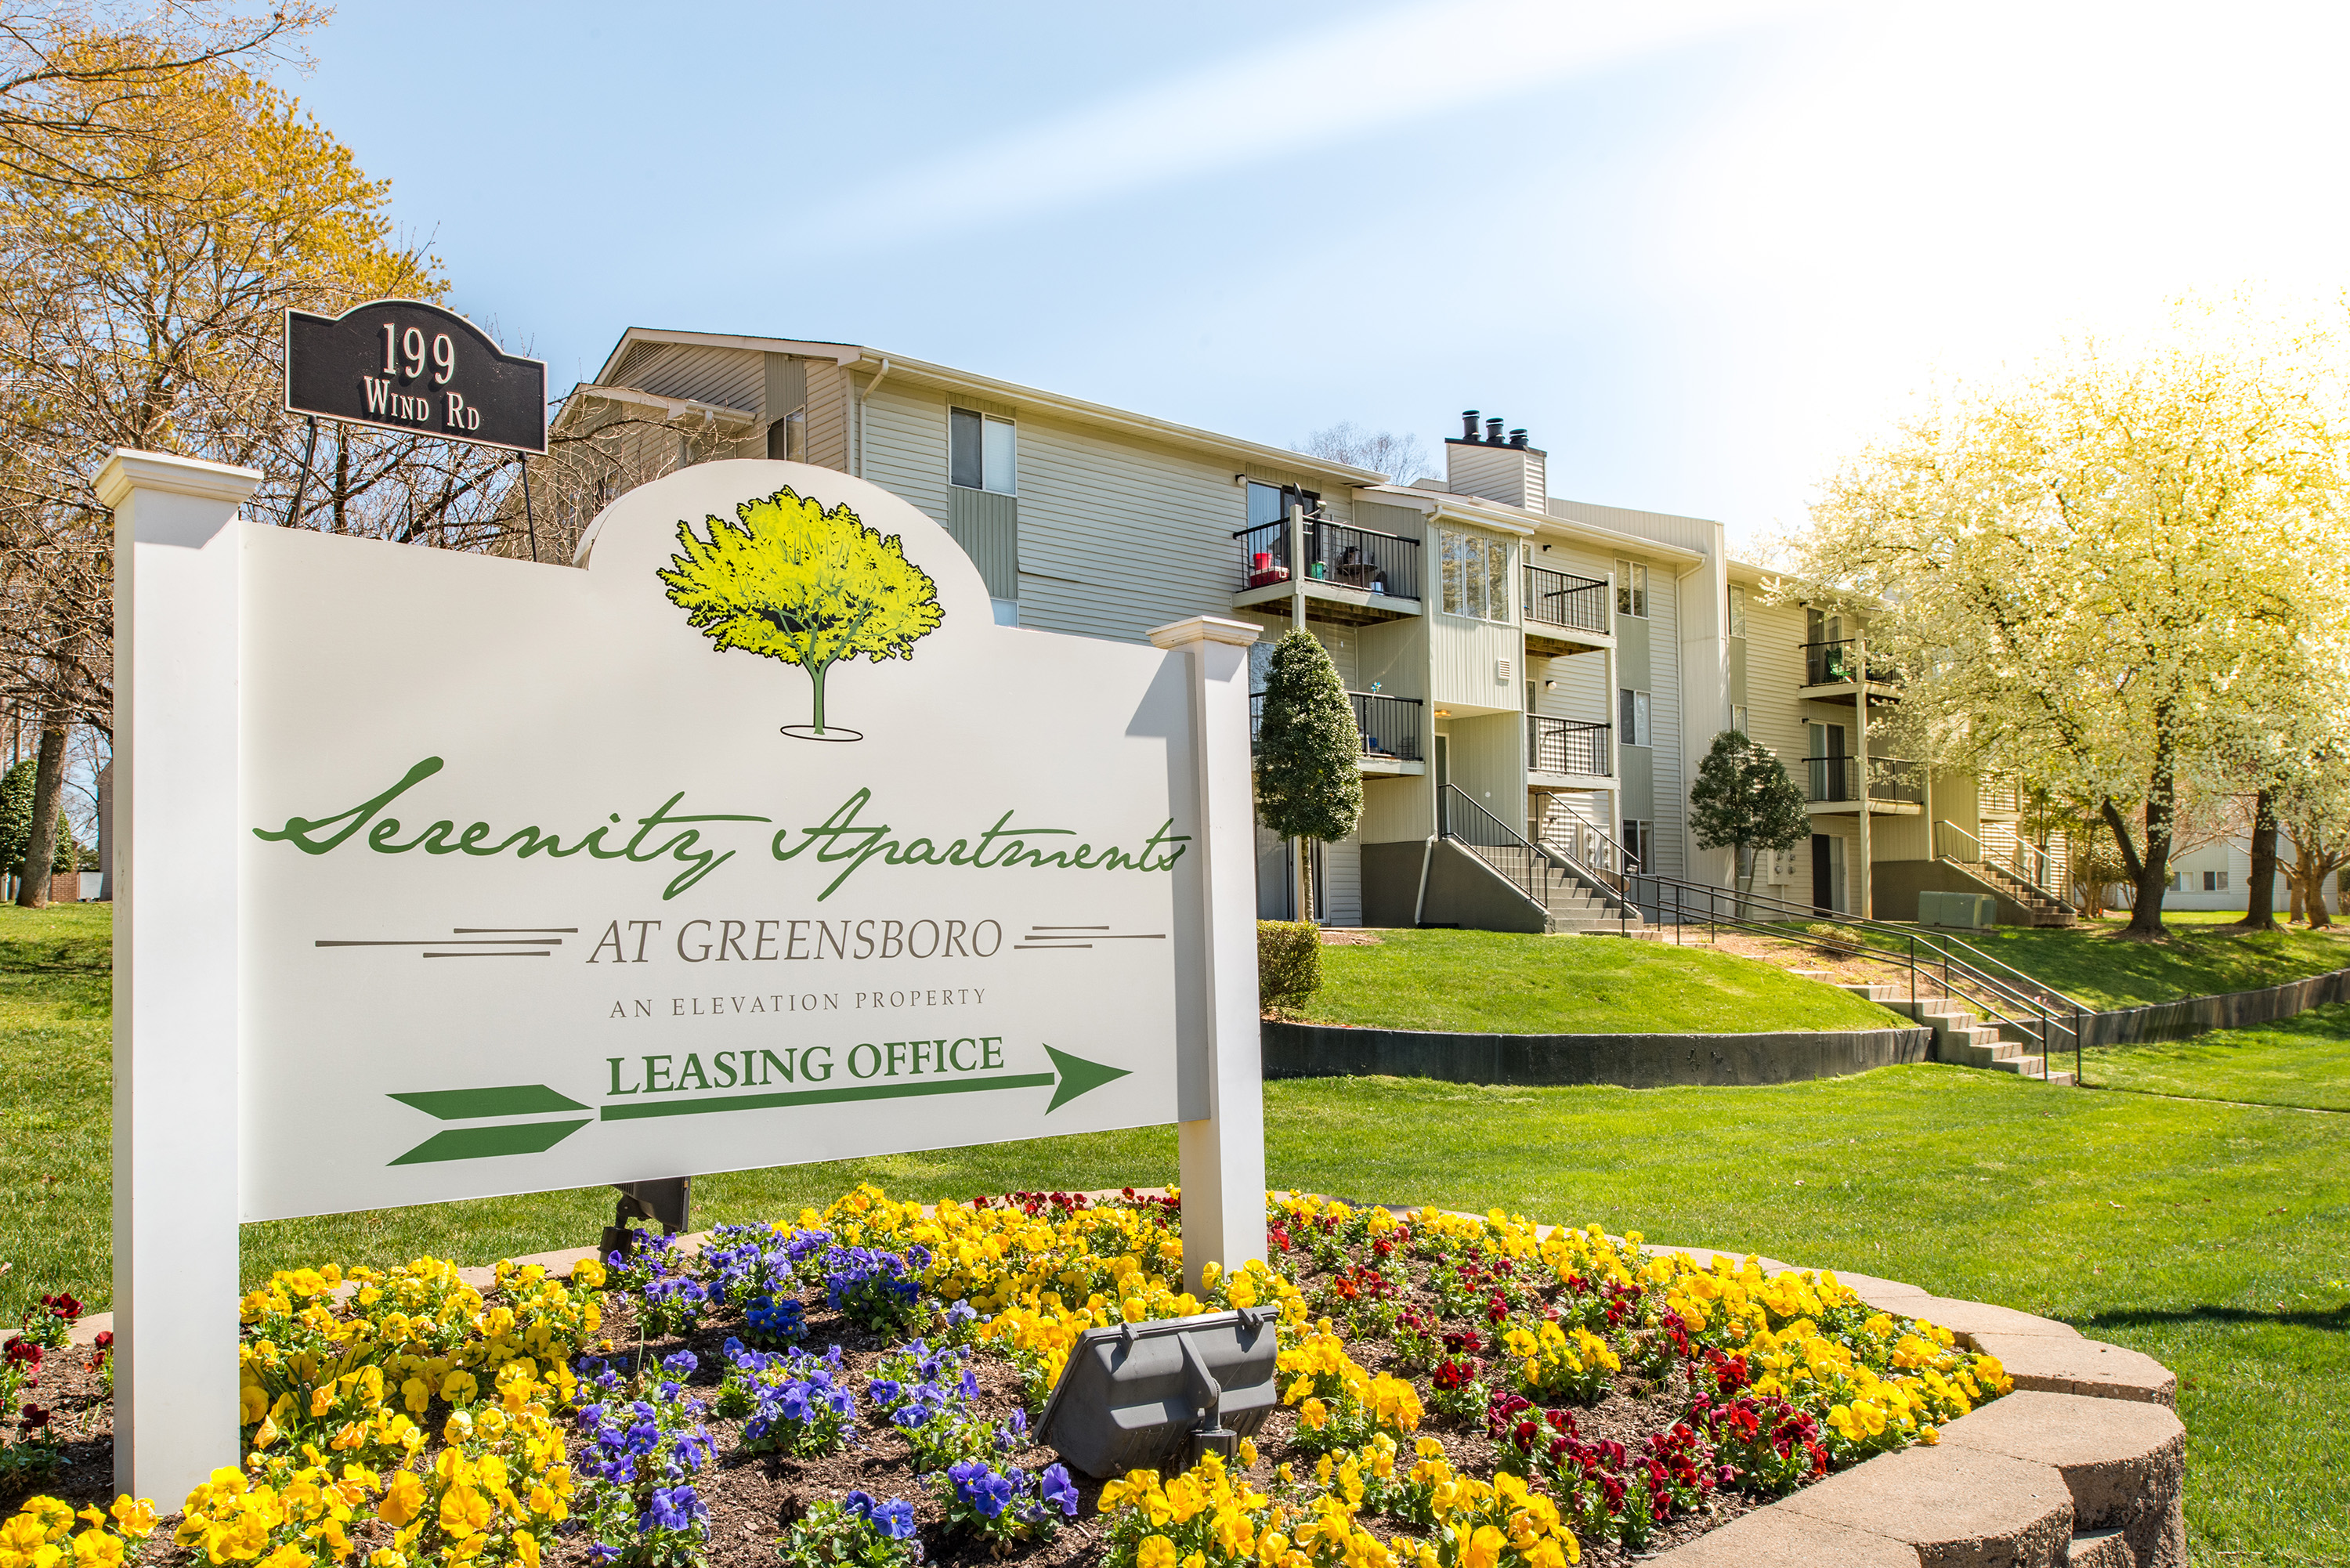 Serenity Apartments at Greensboro